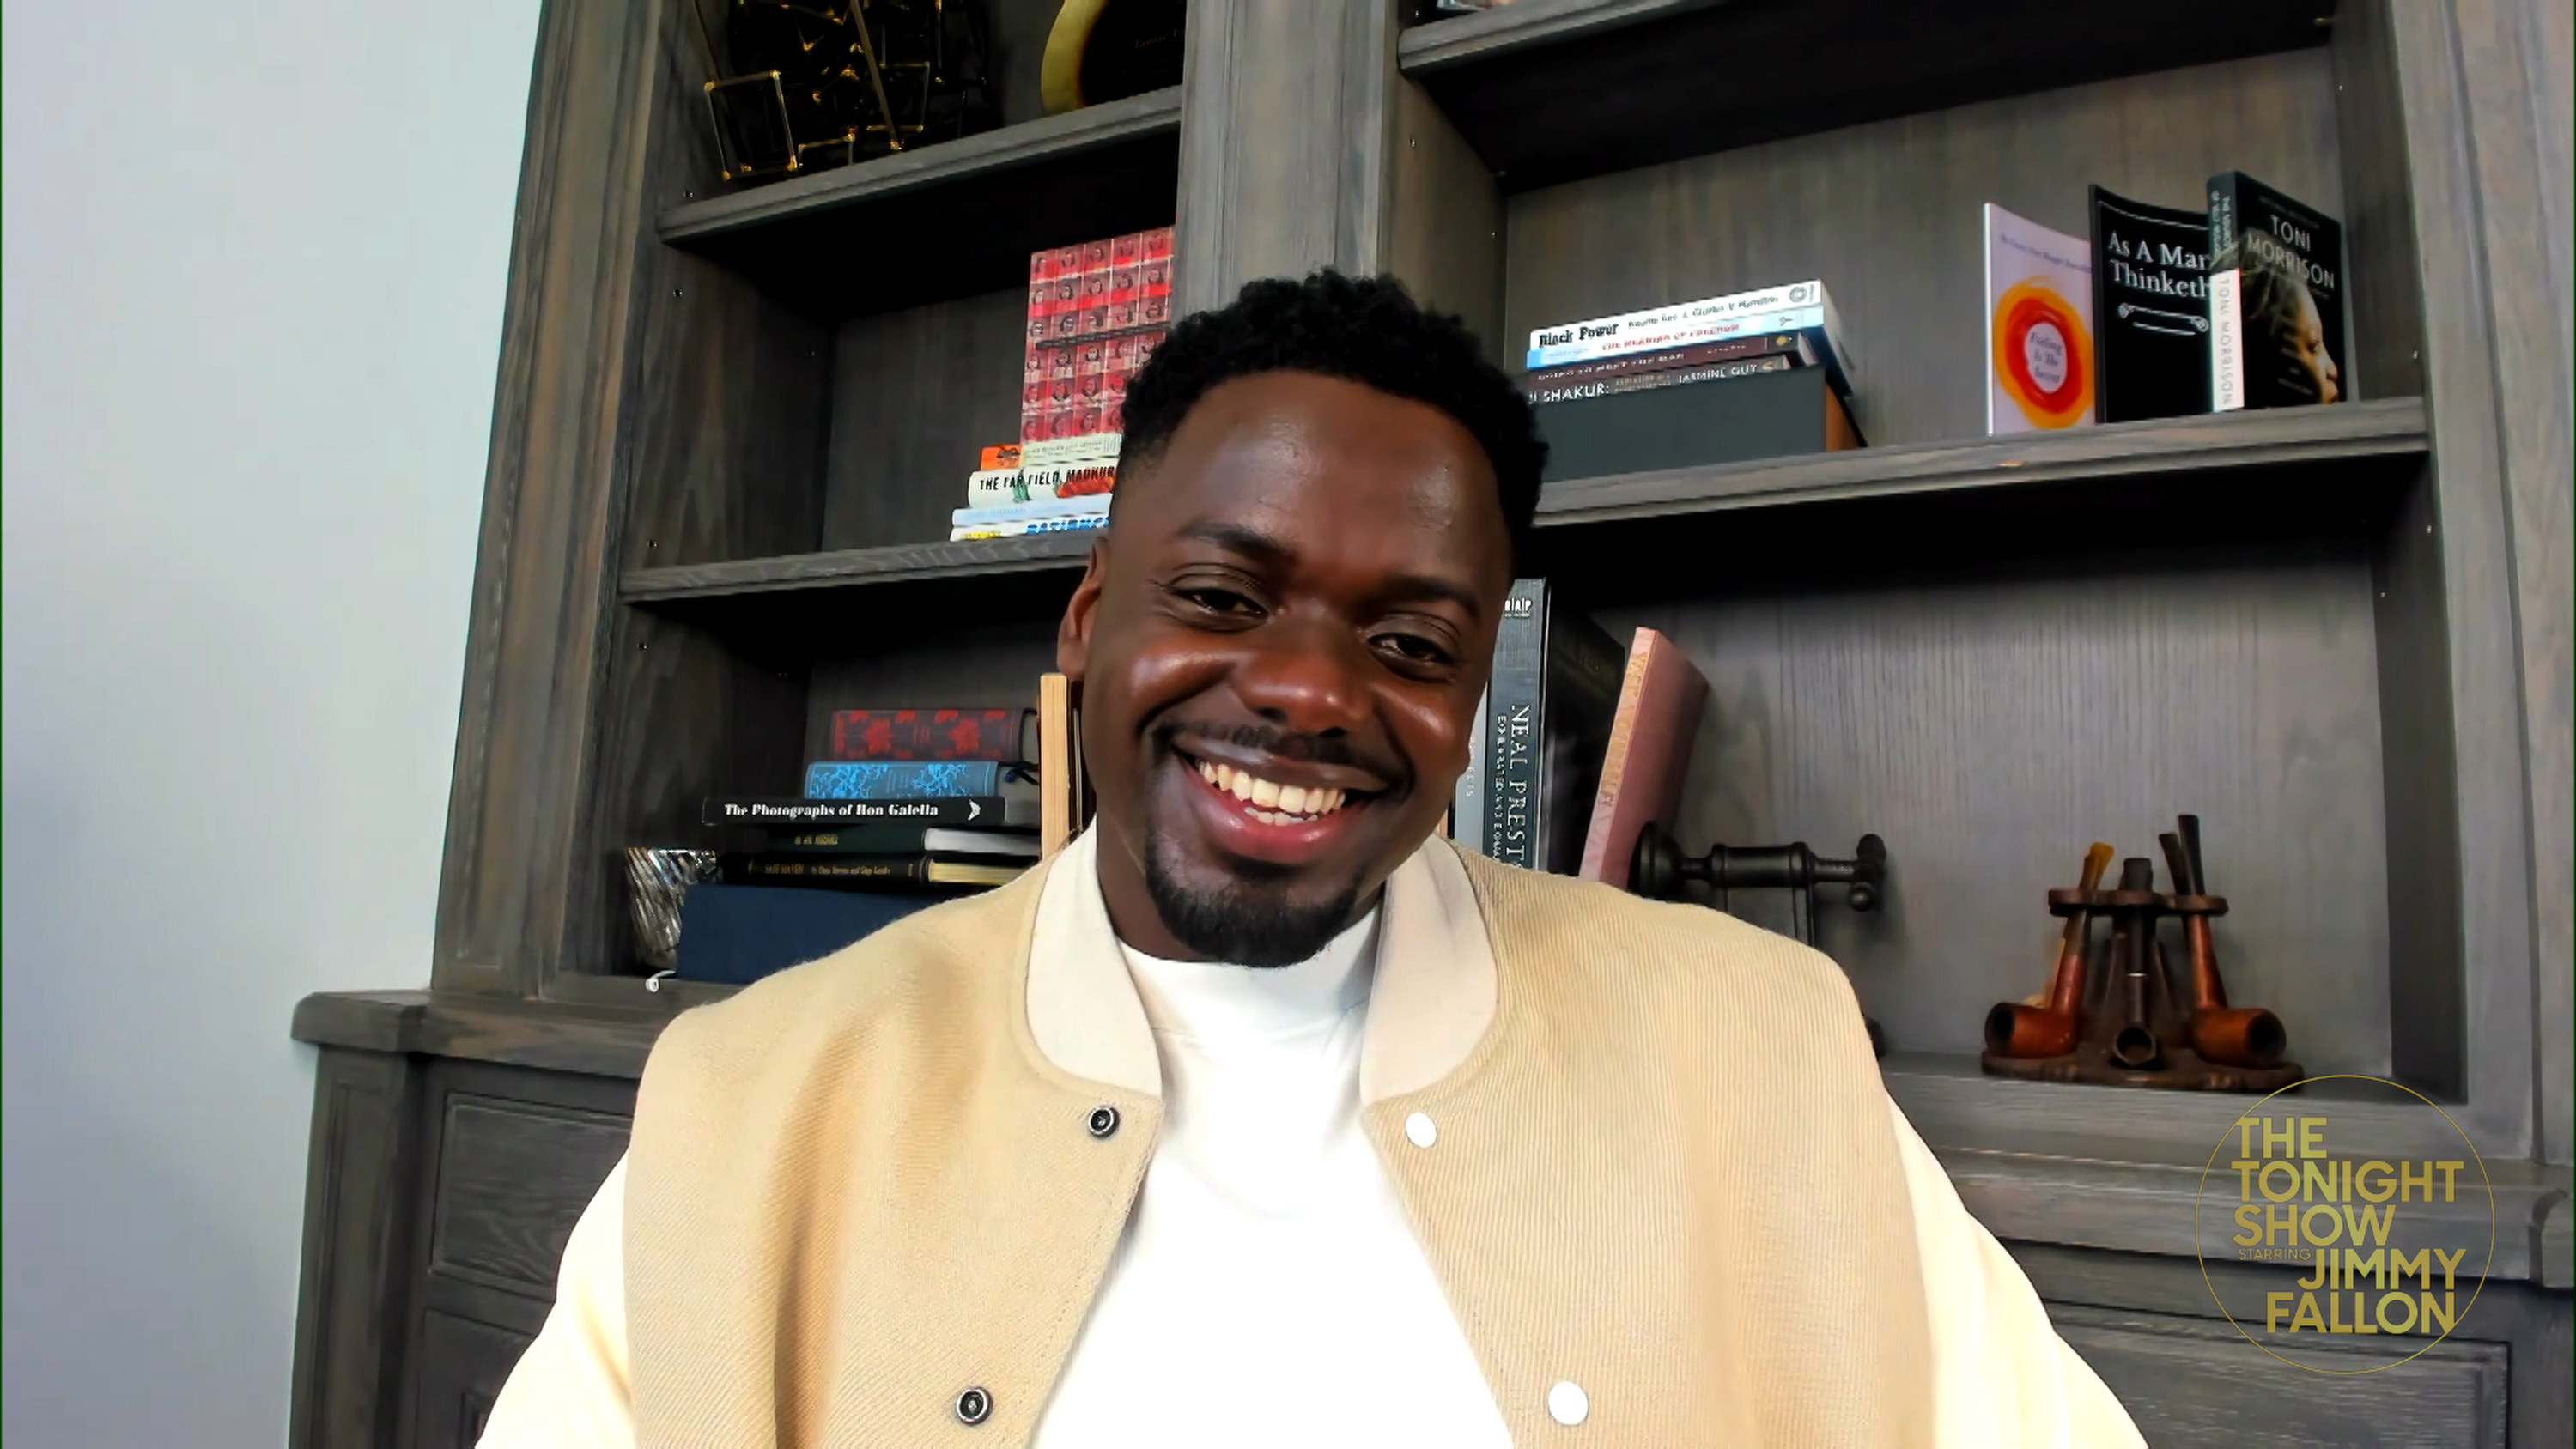 Daniel Kaluuya smiles during a video interview for the Jimmy Fallon Show.